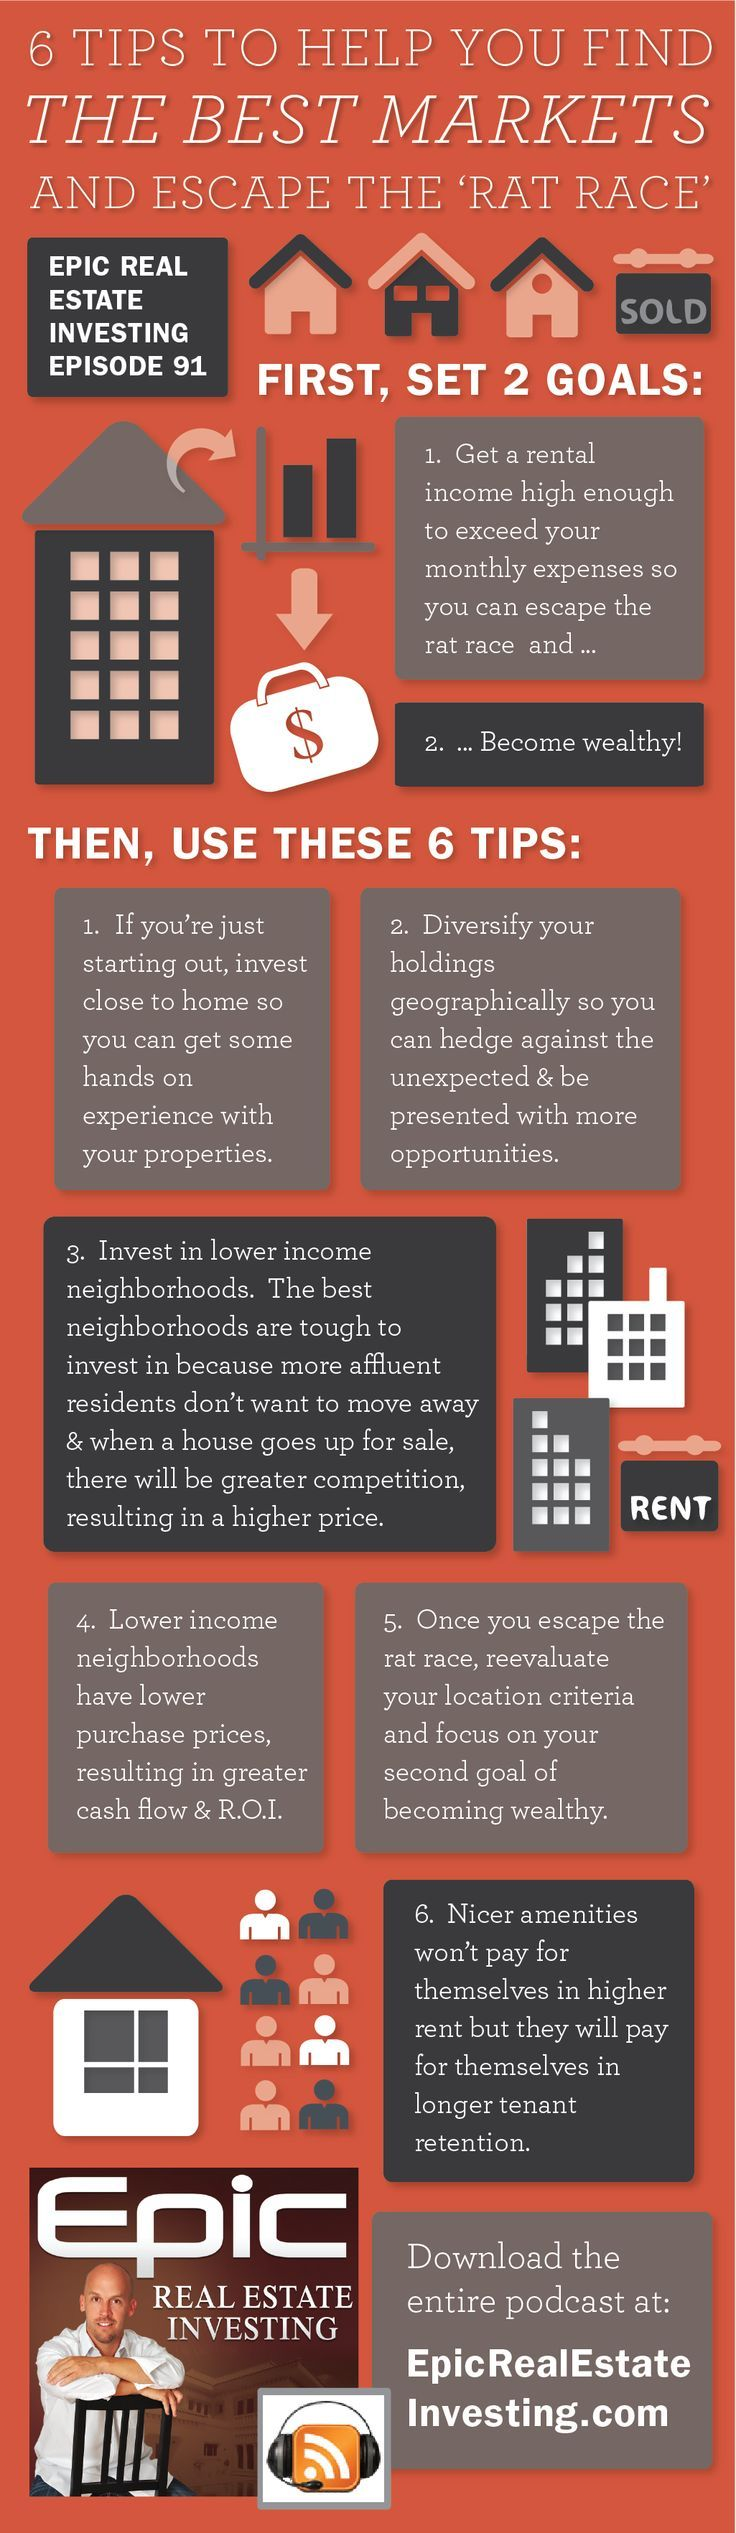 The Best Real Estate Investment Markets: Where to Invest to Escape the Rat Race | Epic Real Estate Investing #Podcast #Infographic